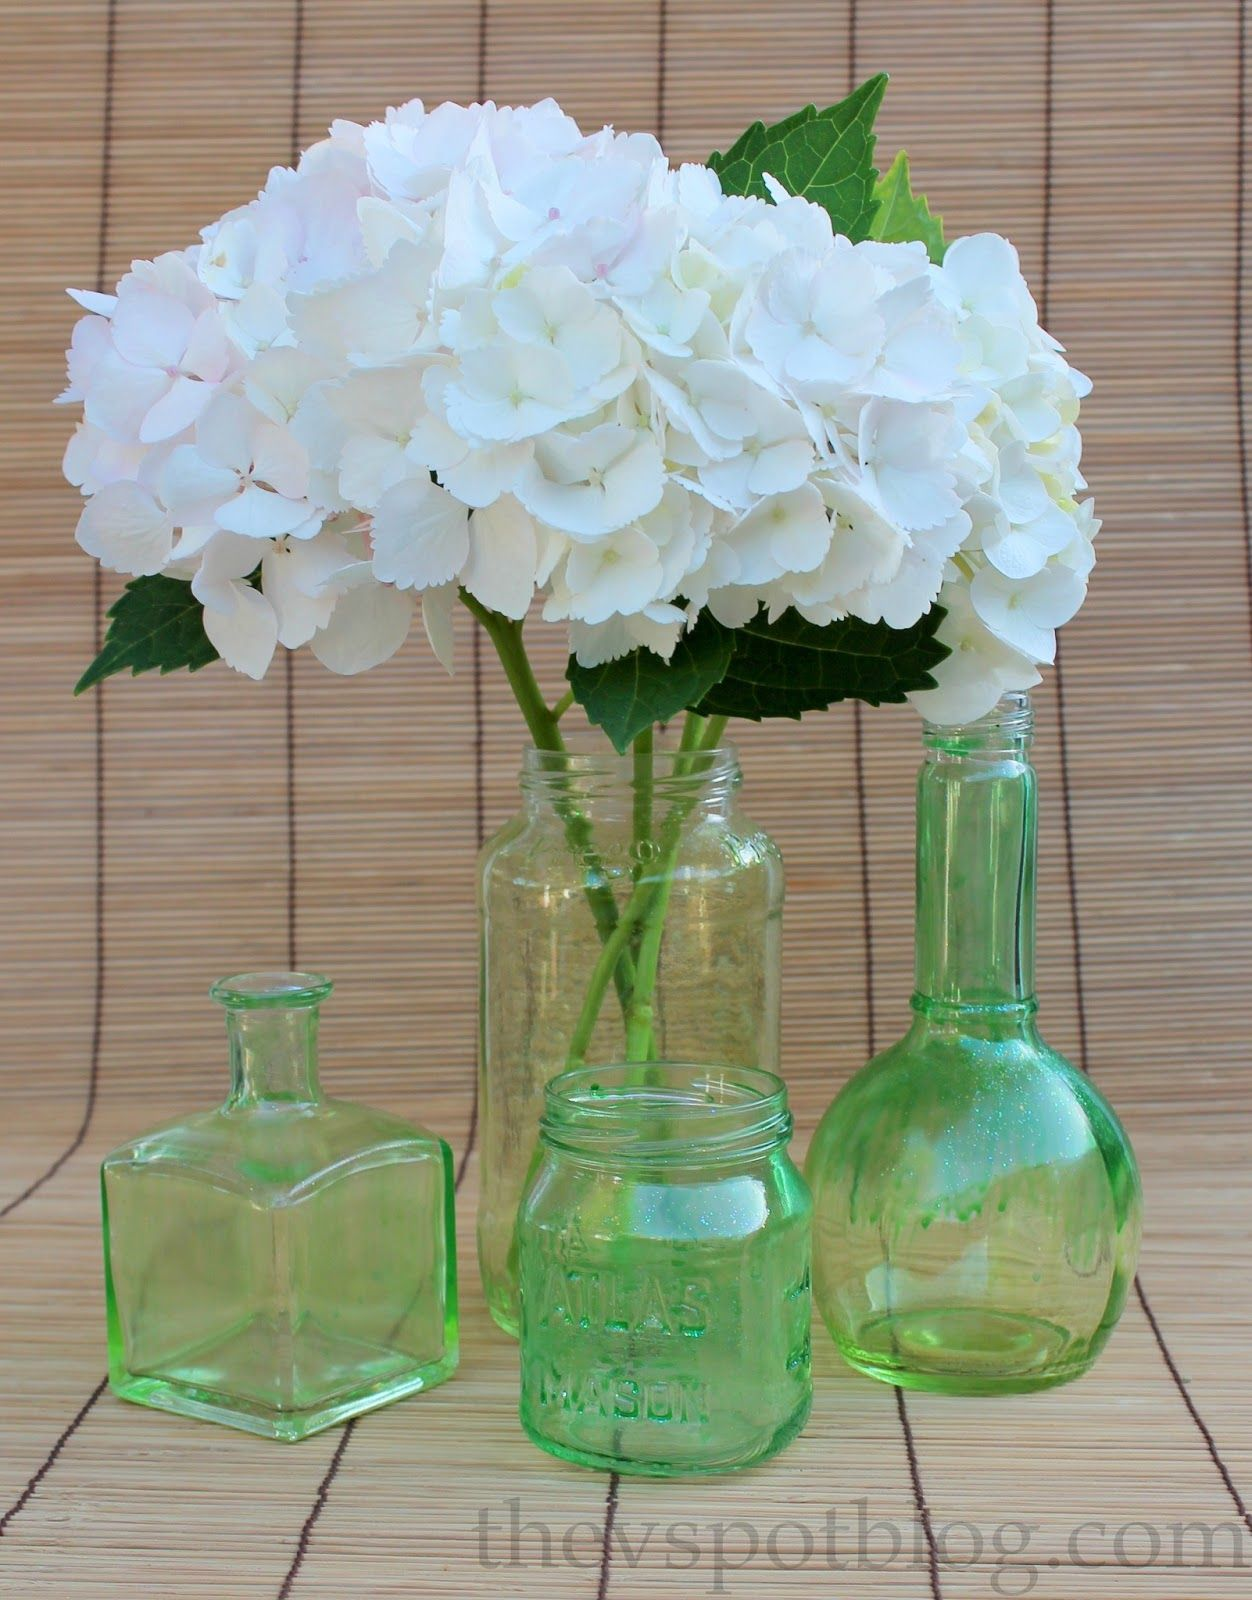 upcycle+empty+bottles+and+jars+to+make+tinted+glass+centerpieces.jpg (1252×1600)